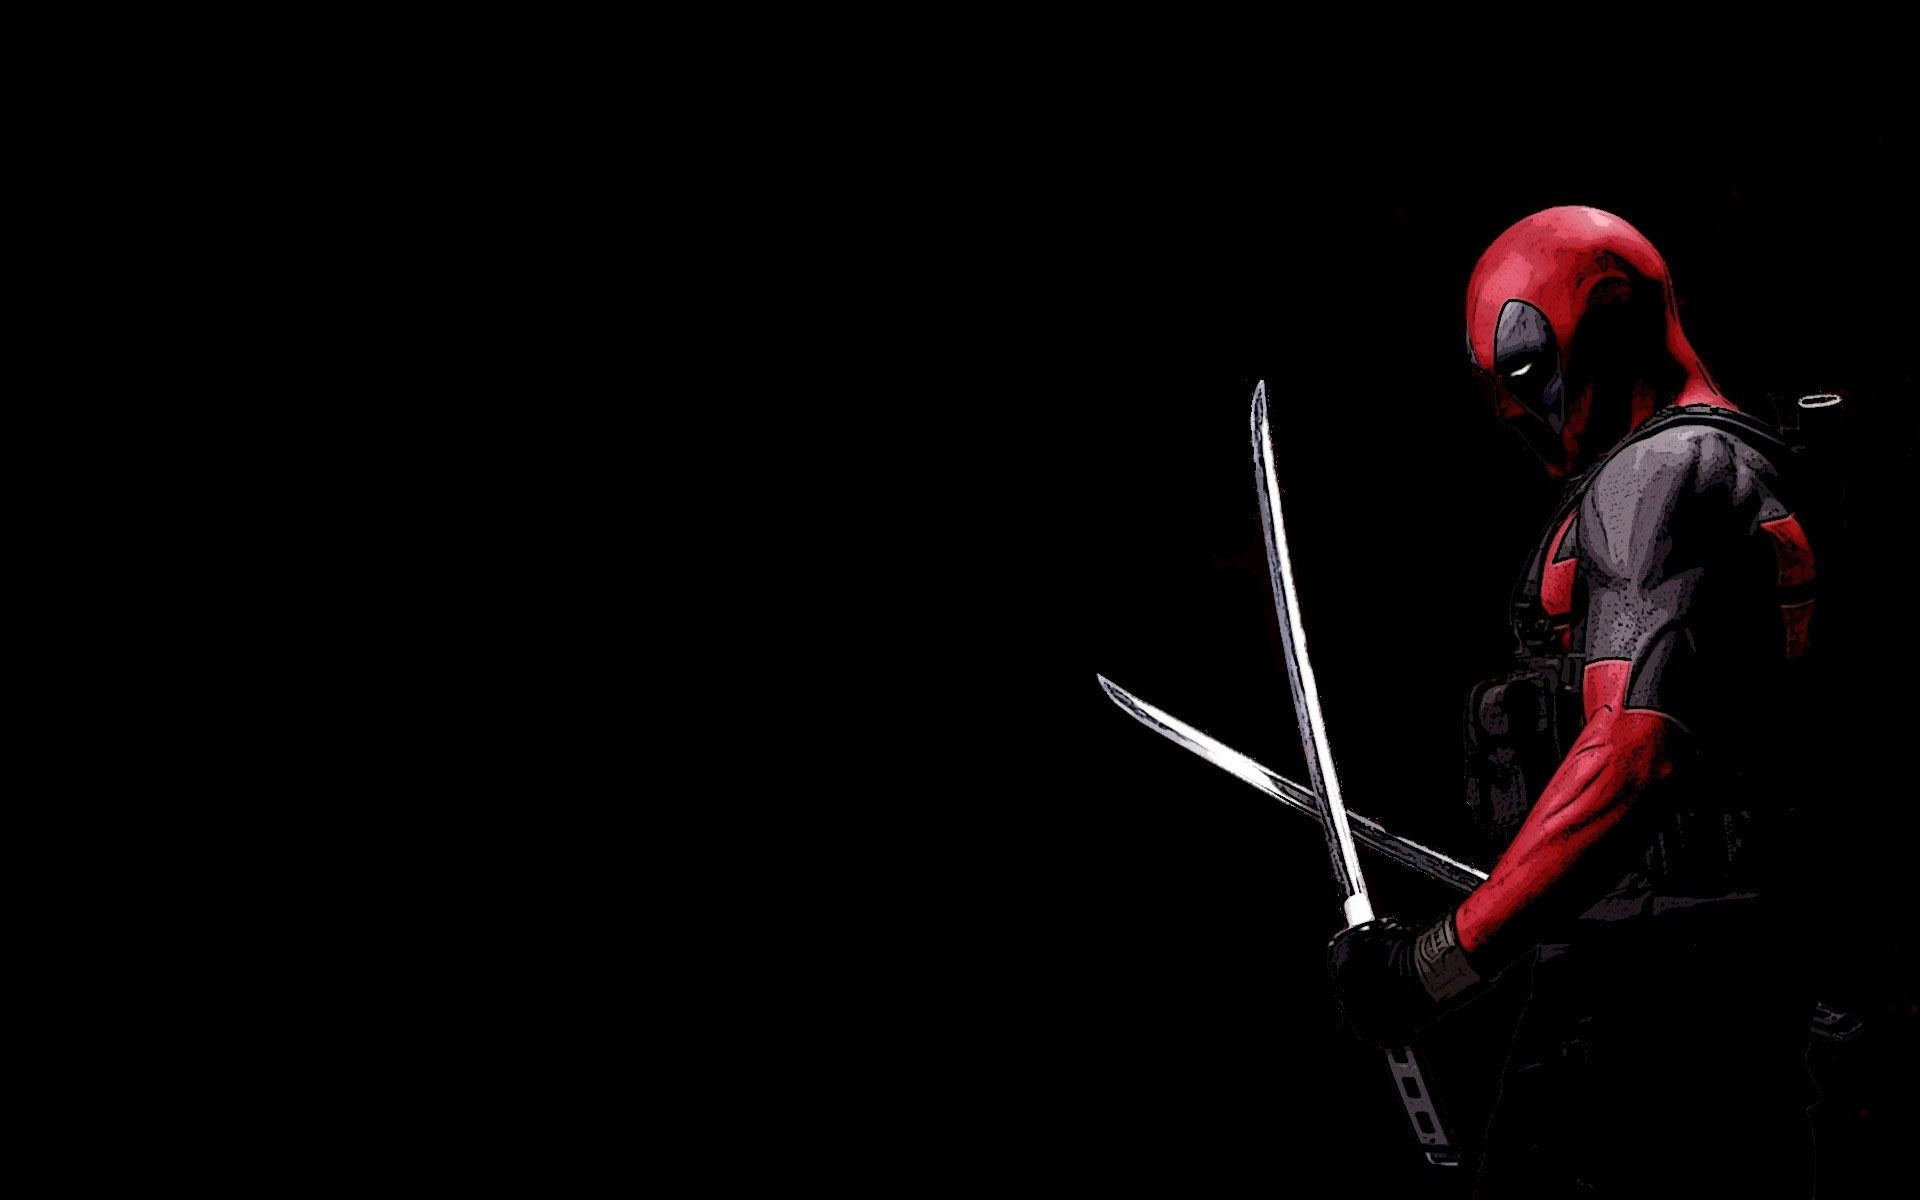 deadpool wallpaper hd 1080p ·① download free stunning hd wallpapers